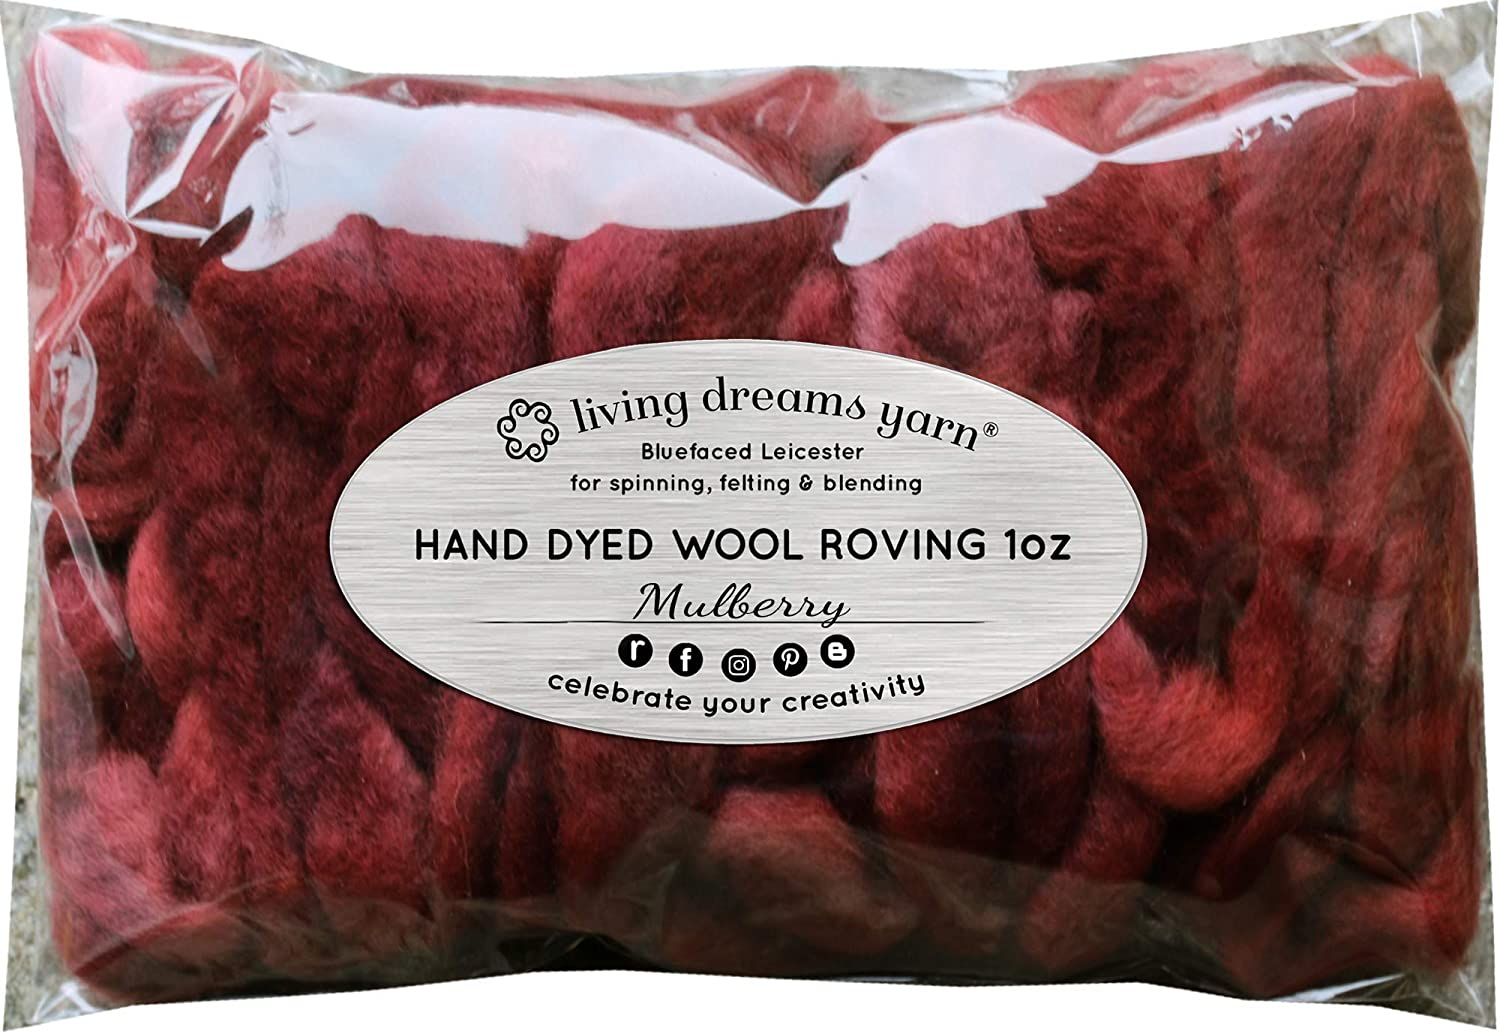 Wool Roving Hand Dyed Wall Hangings and Embellishments Super Soft BFL Combed Top Pre-Drafted for Easy Hand Spinning 4 Ounce Weaving Artisanal Craft Fiber ideal for Felting Brown Rust